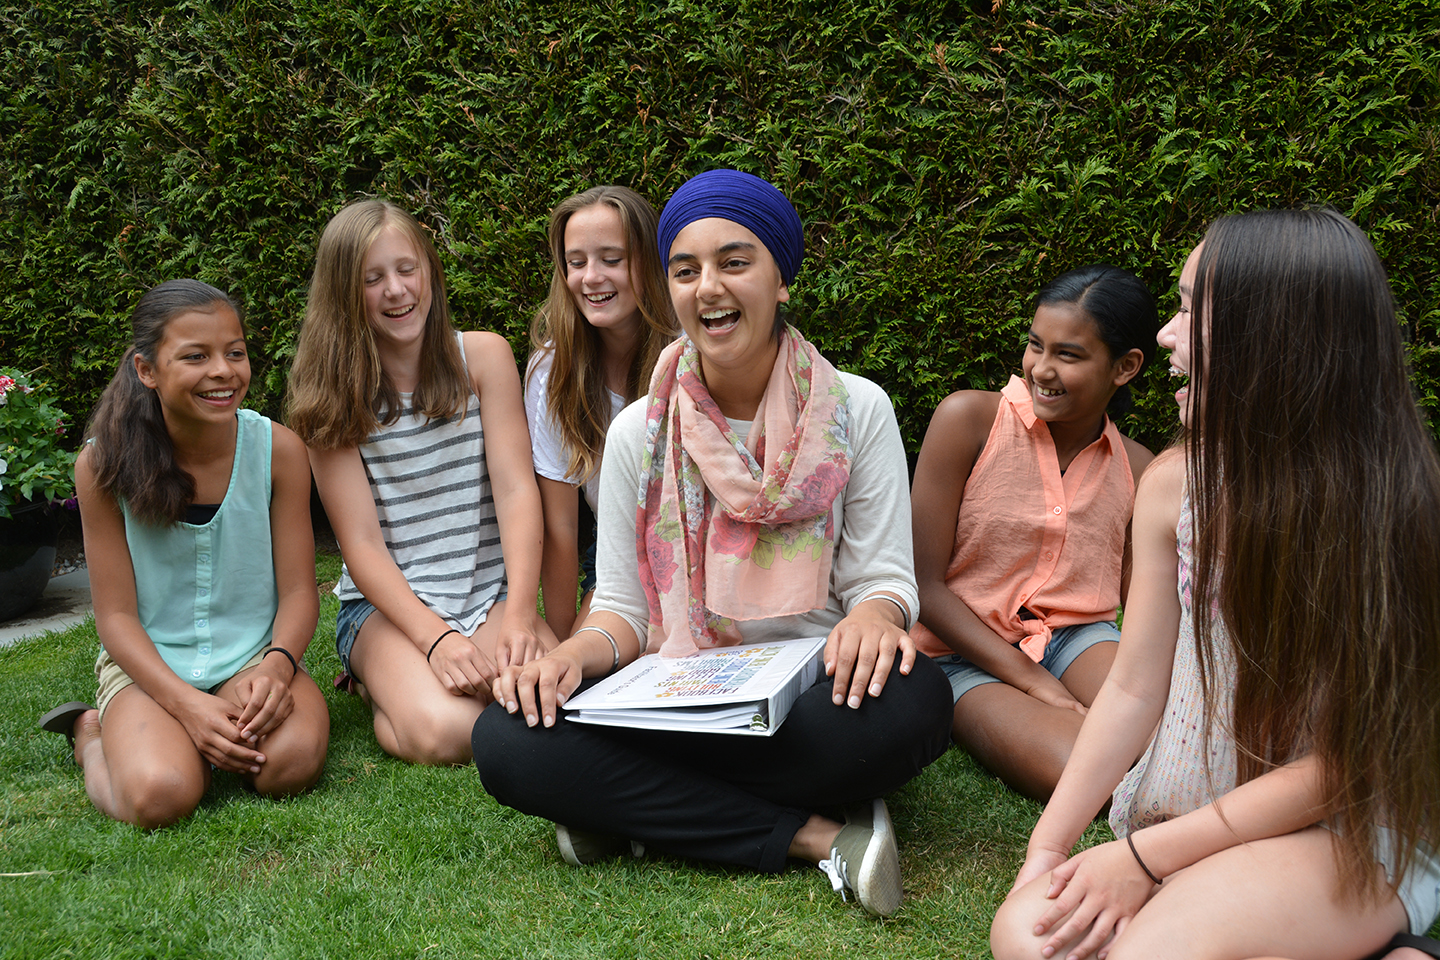 """The girls made new friends, are more comfortable speaking their minds and seem to be smiling brighter."" –  Go Girls! Mentor Laura"